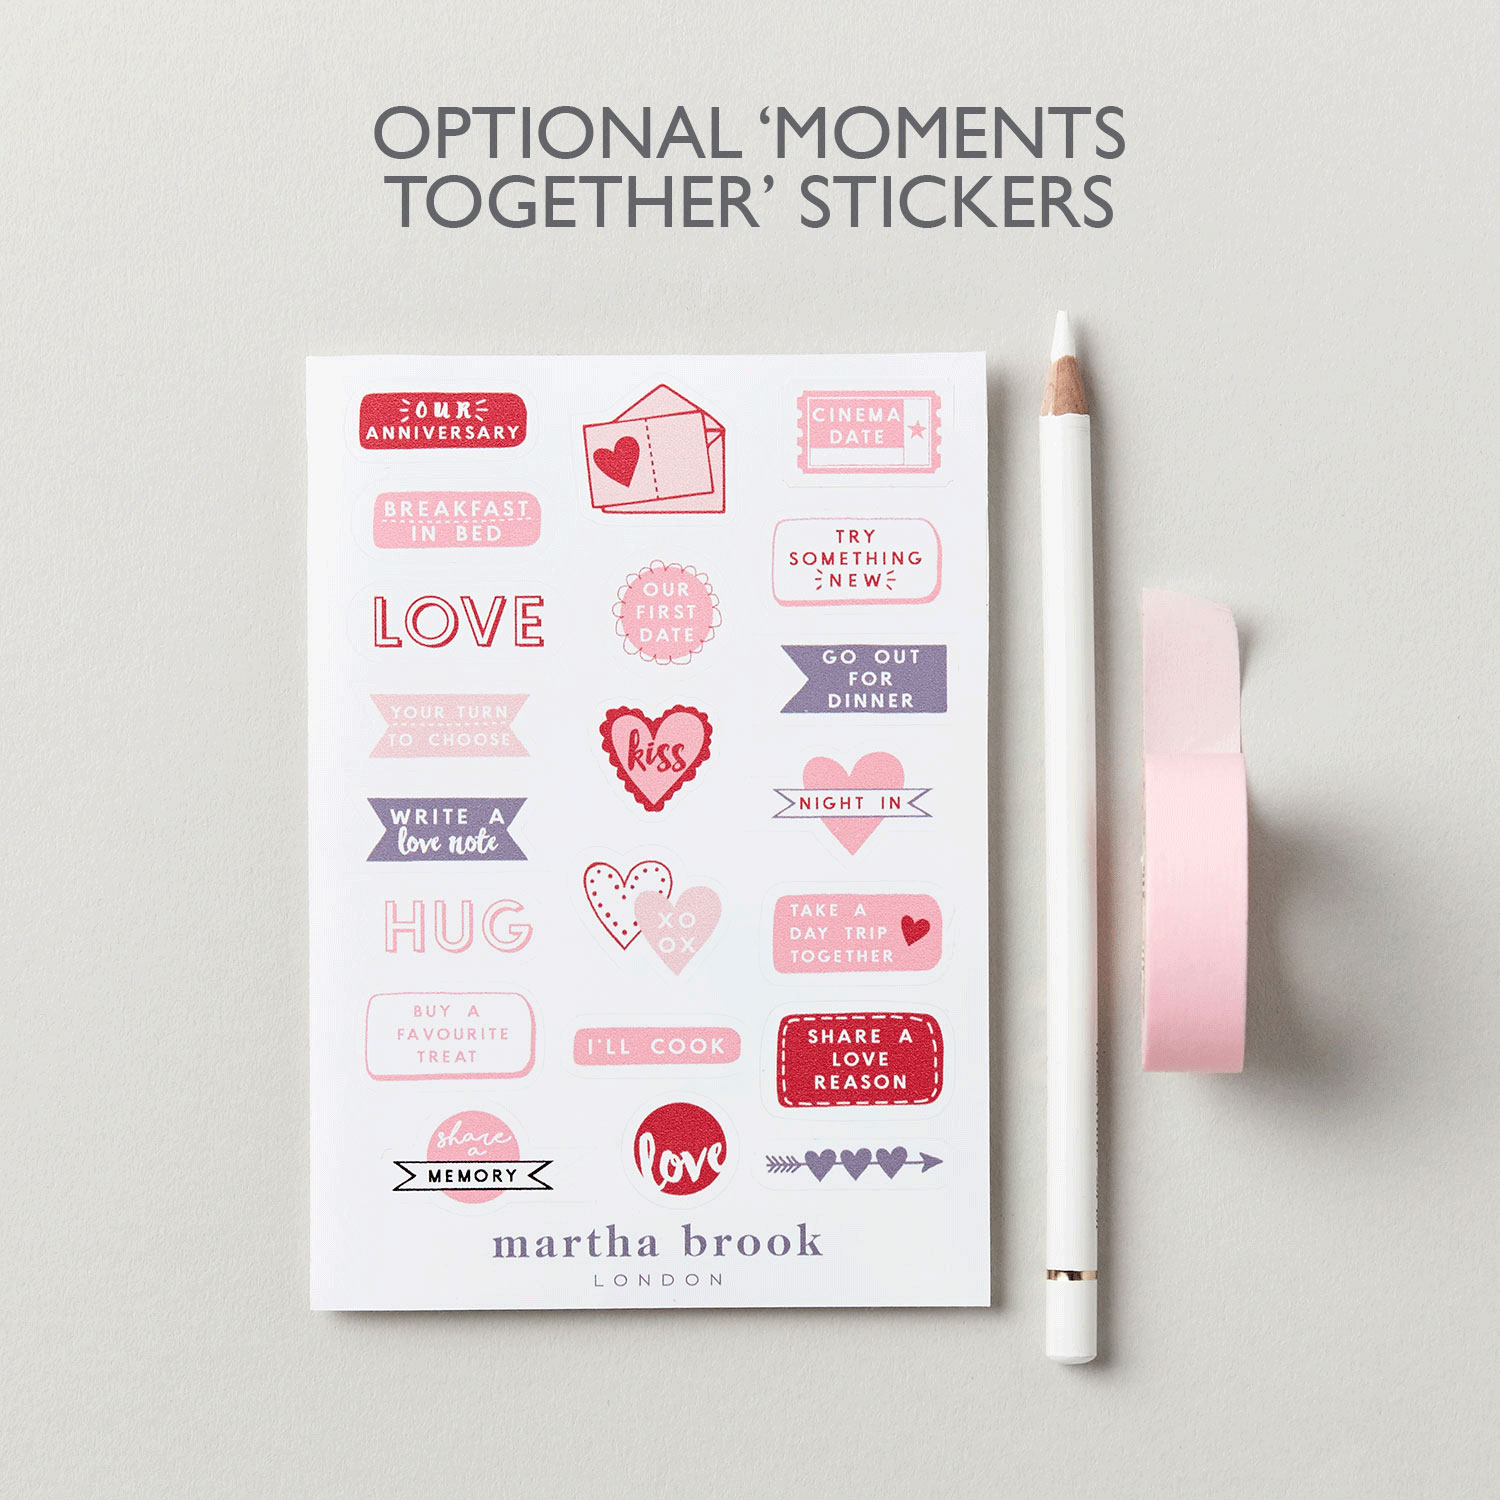 Moments Together Stickers